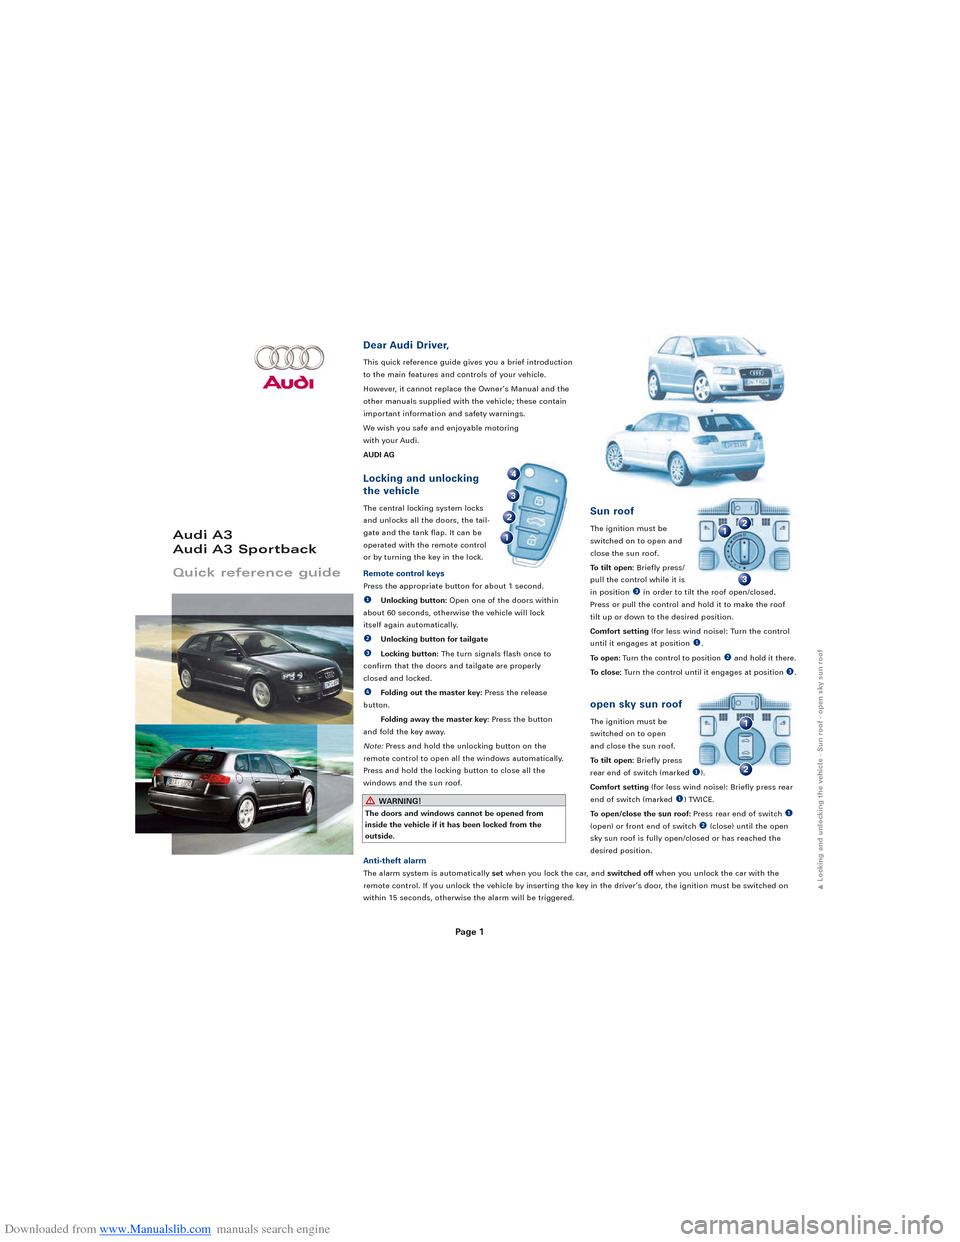 AUDI A3 2008 8P / 2.G Quick Reference Guide, Page 1